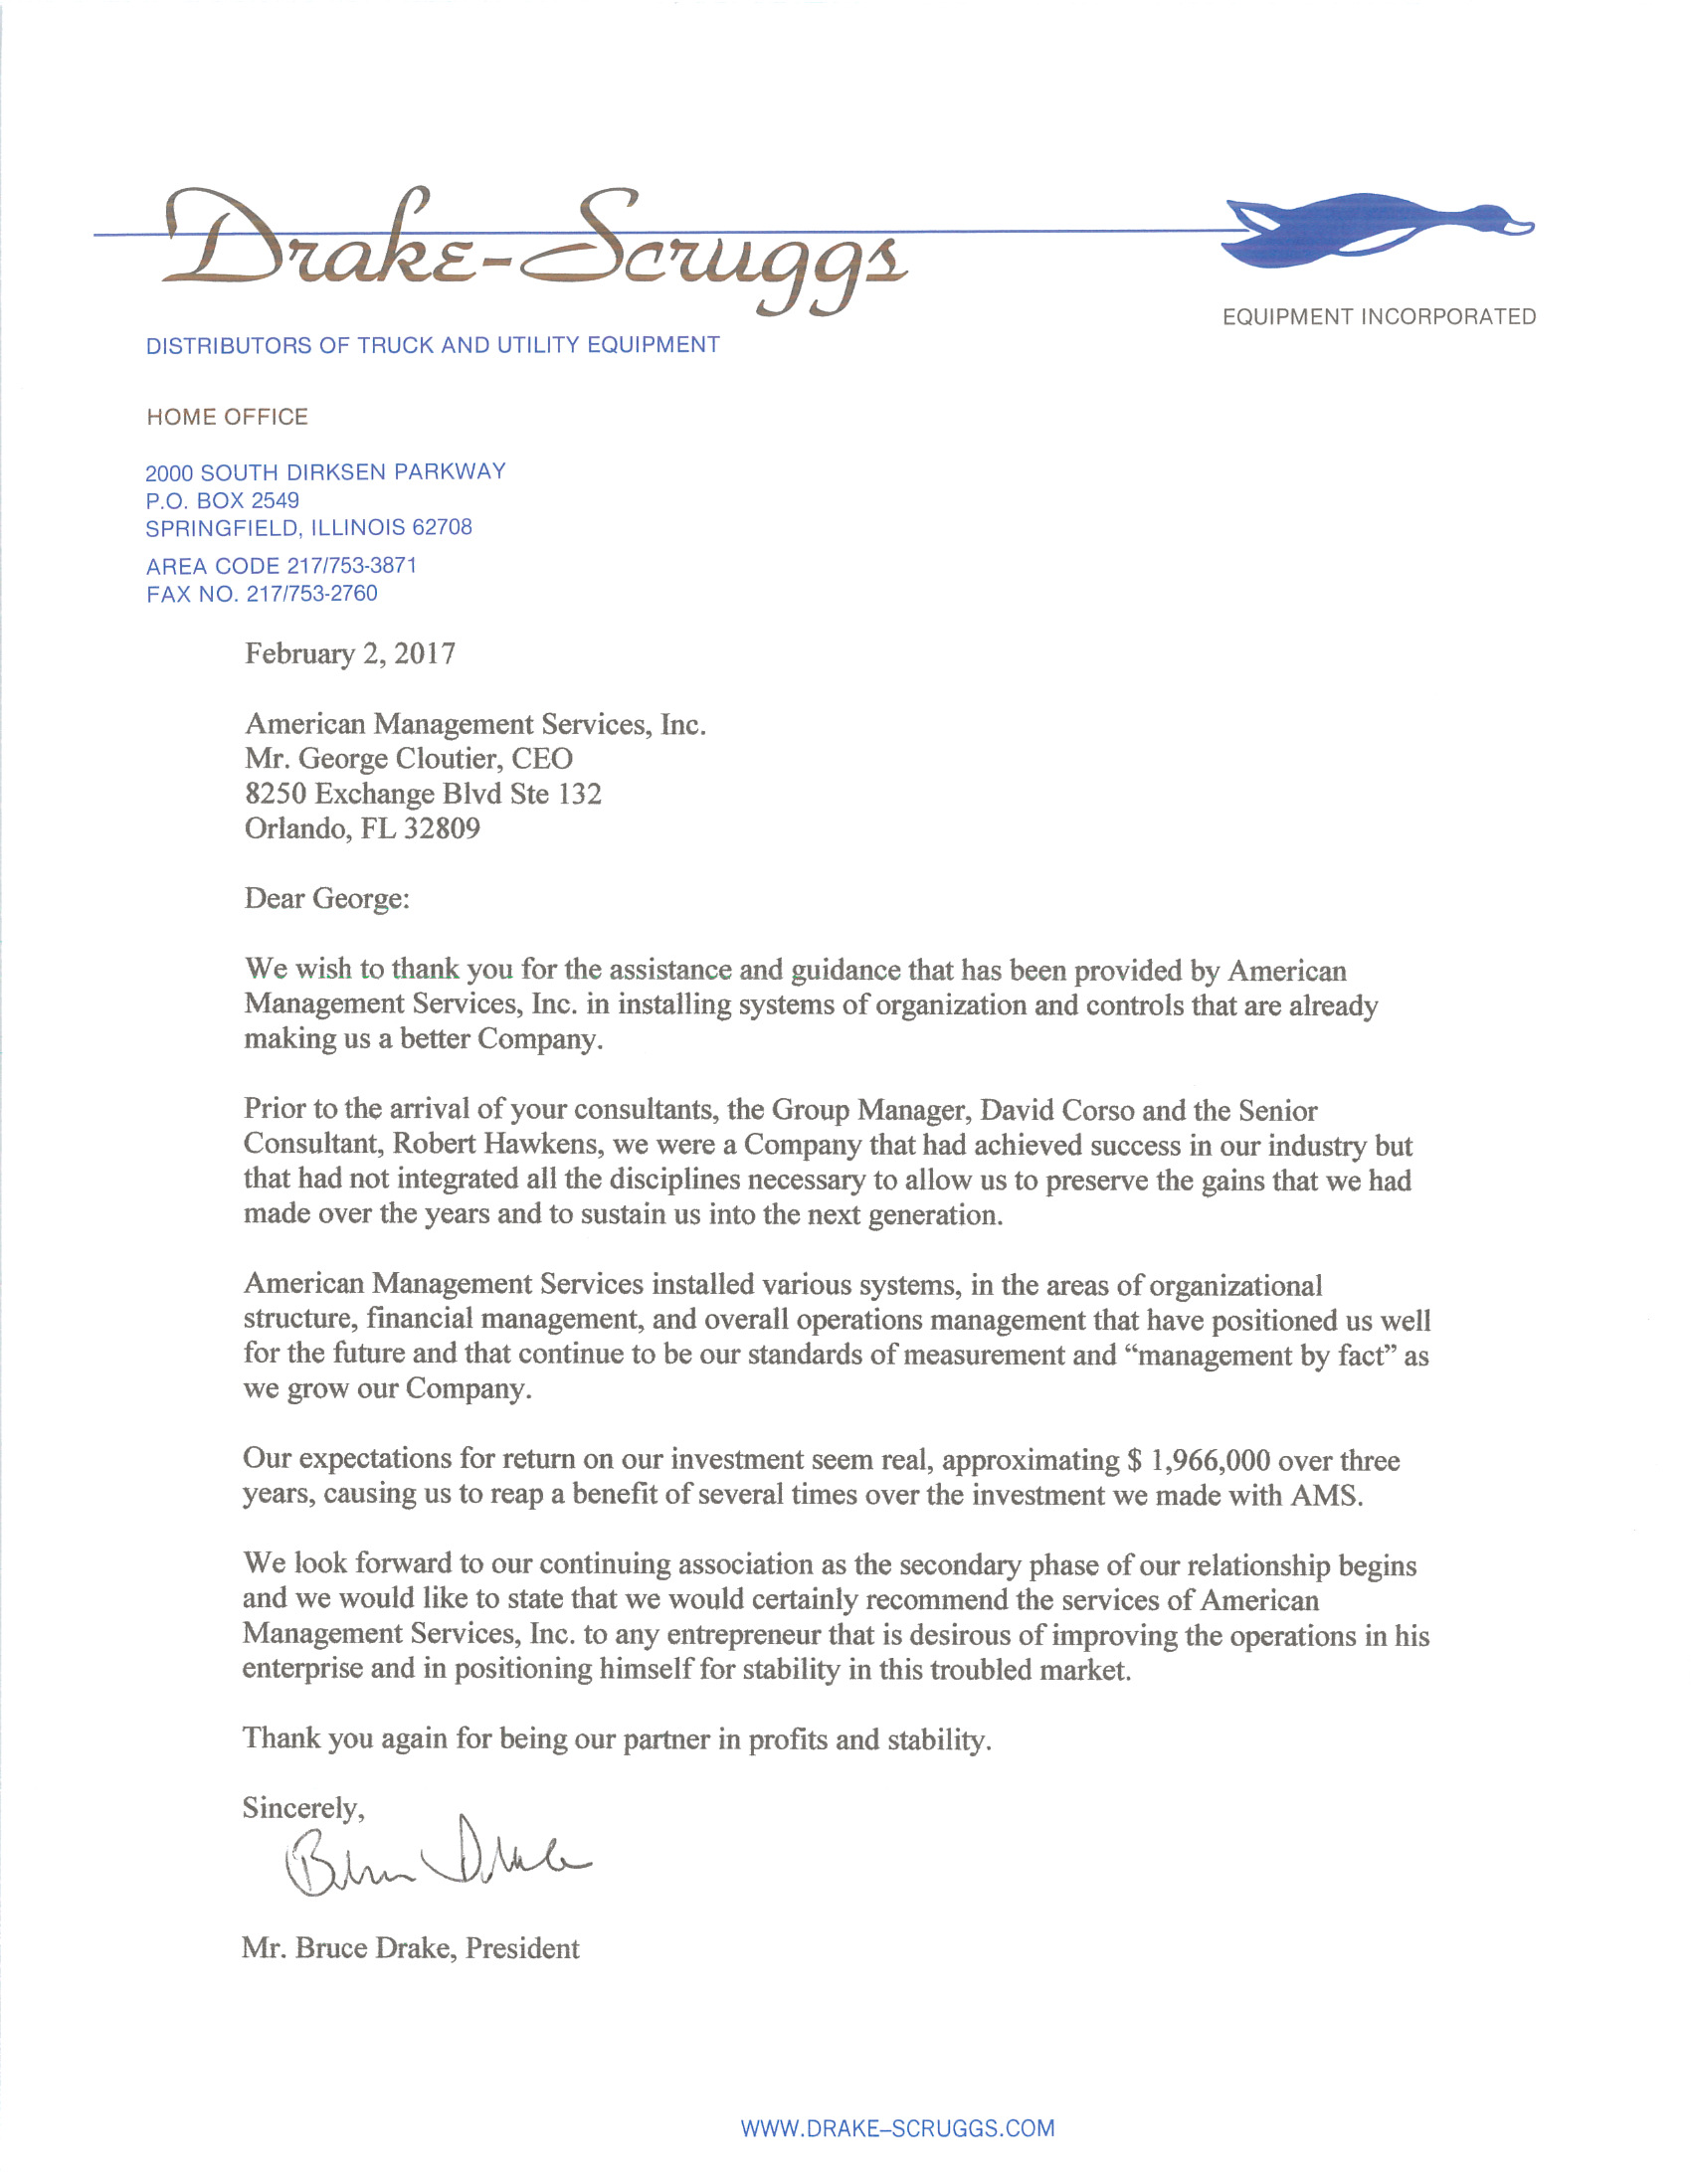 Drake scruggs equipment reference letter american management drake scruggs equipment reference letter aljukfo Image collections